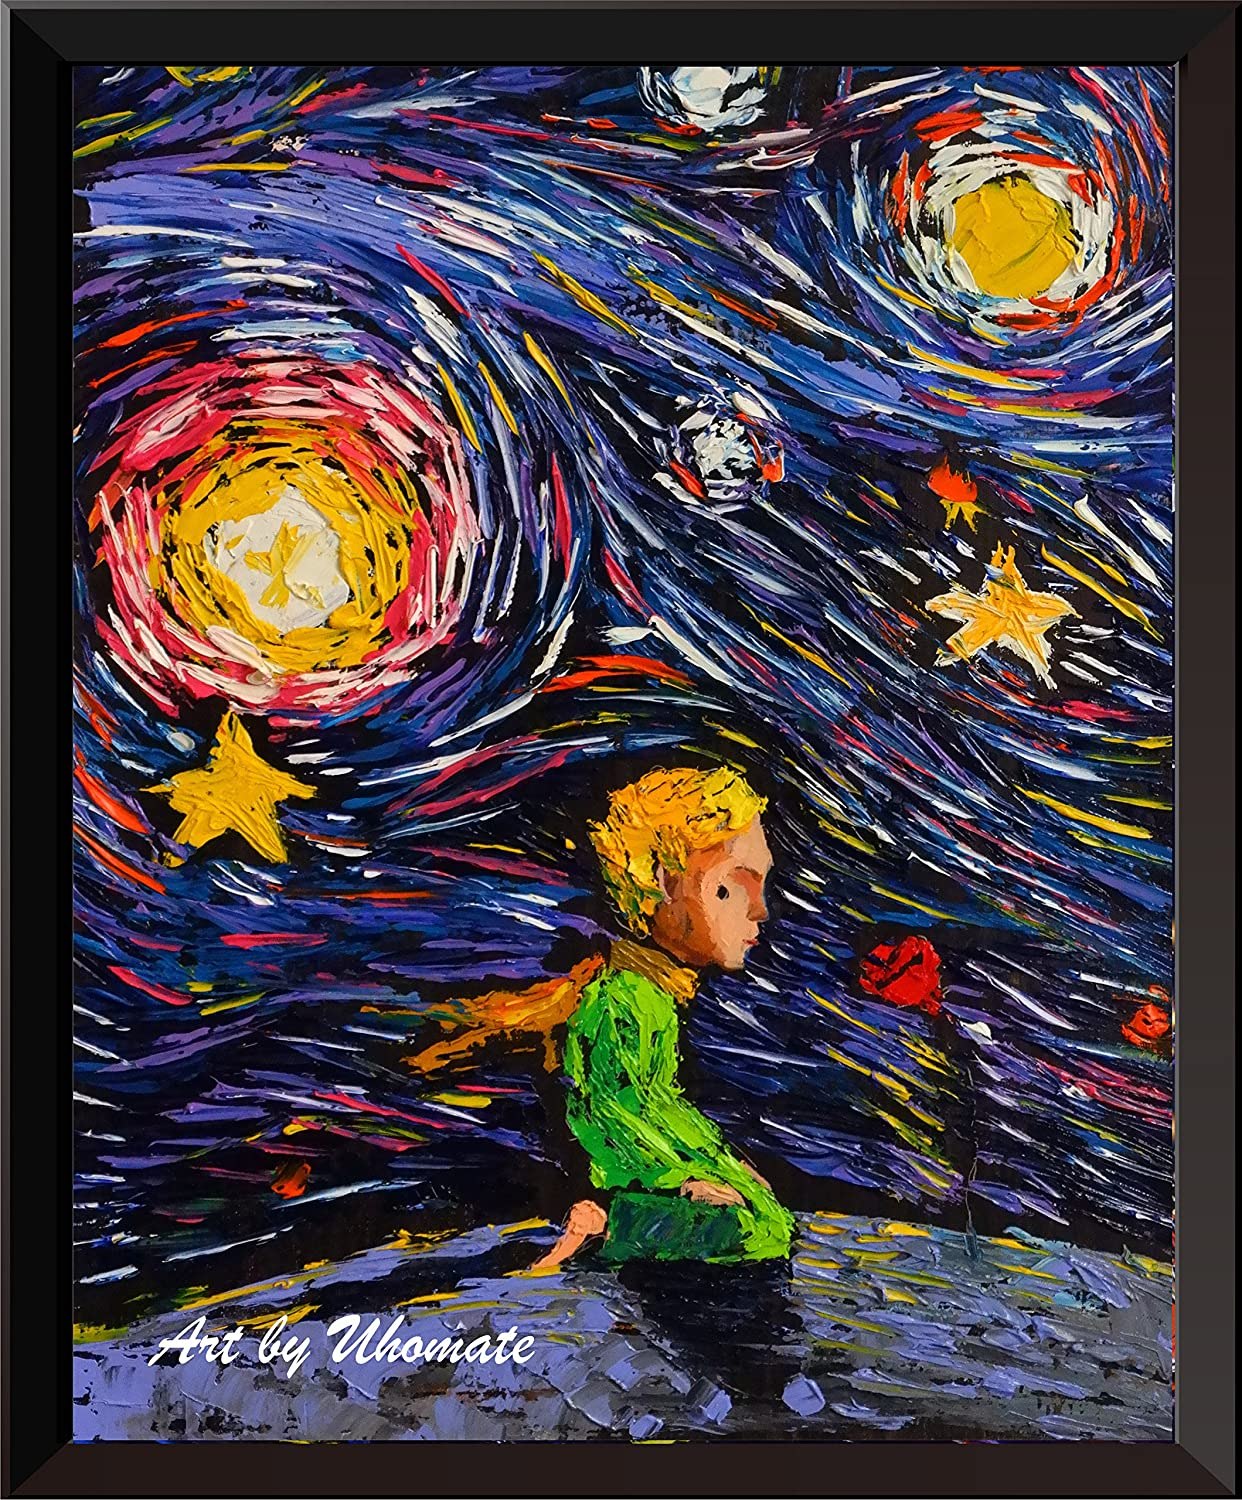 Uhomate The Little Prince Fox Le Petit Prince Little Prince Vincent Van Gogh Starry Night Posters Home Canvas Wall Art Nursery Decor Living Room Wall Decor A021 (13X19)